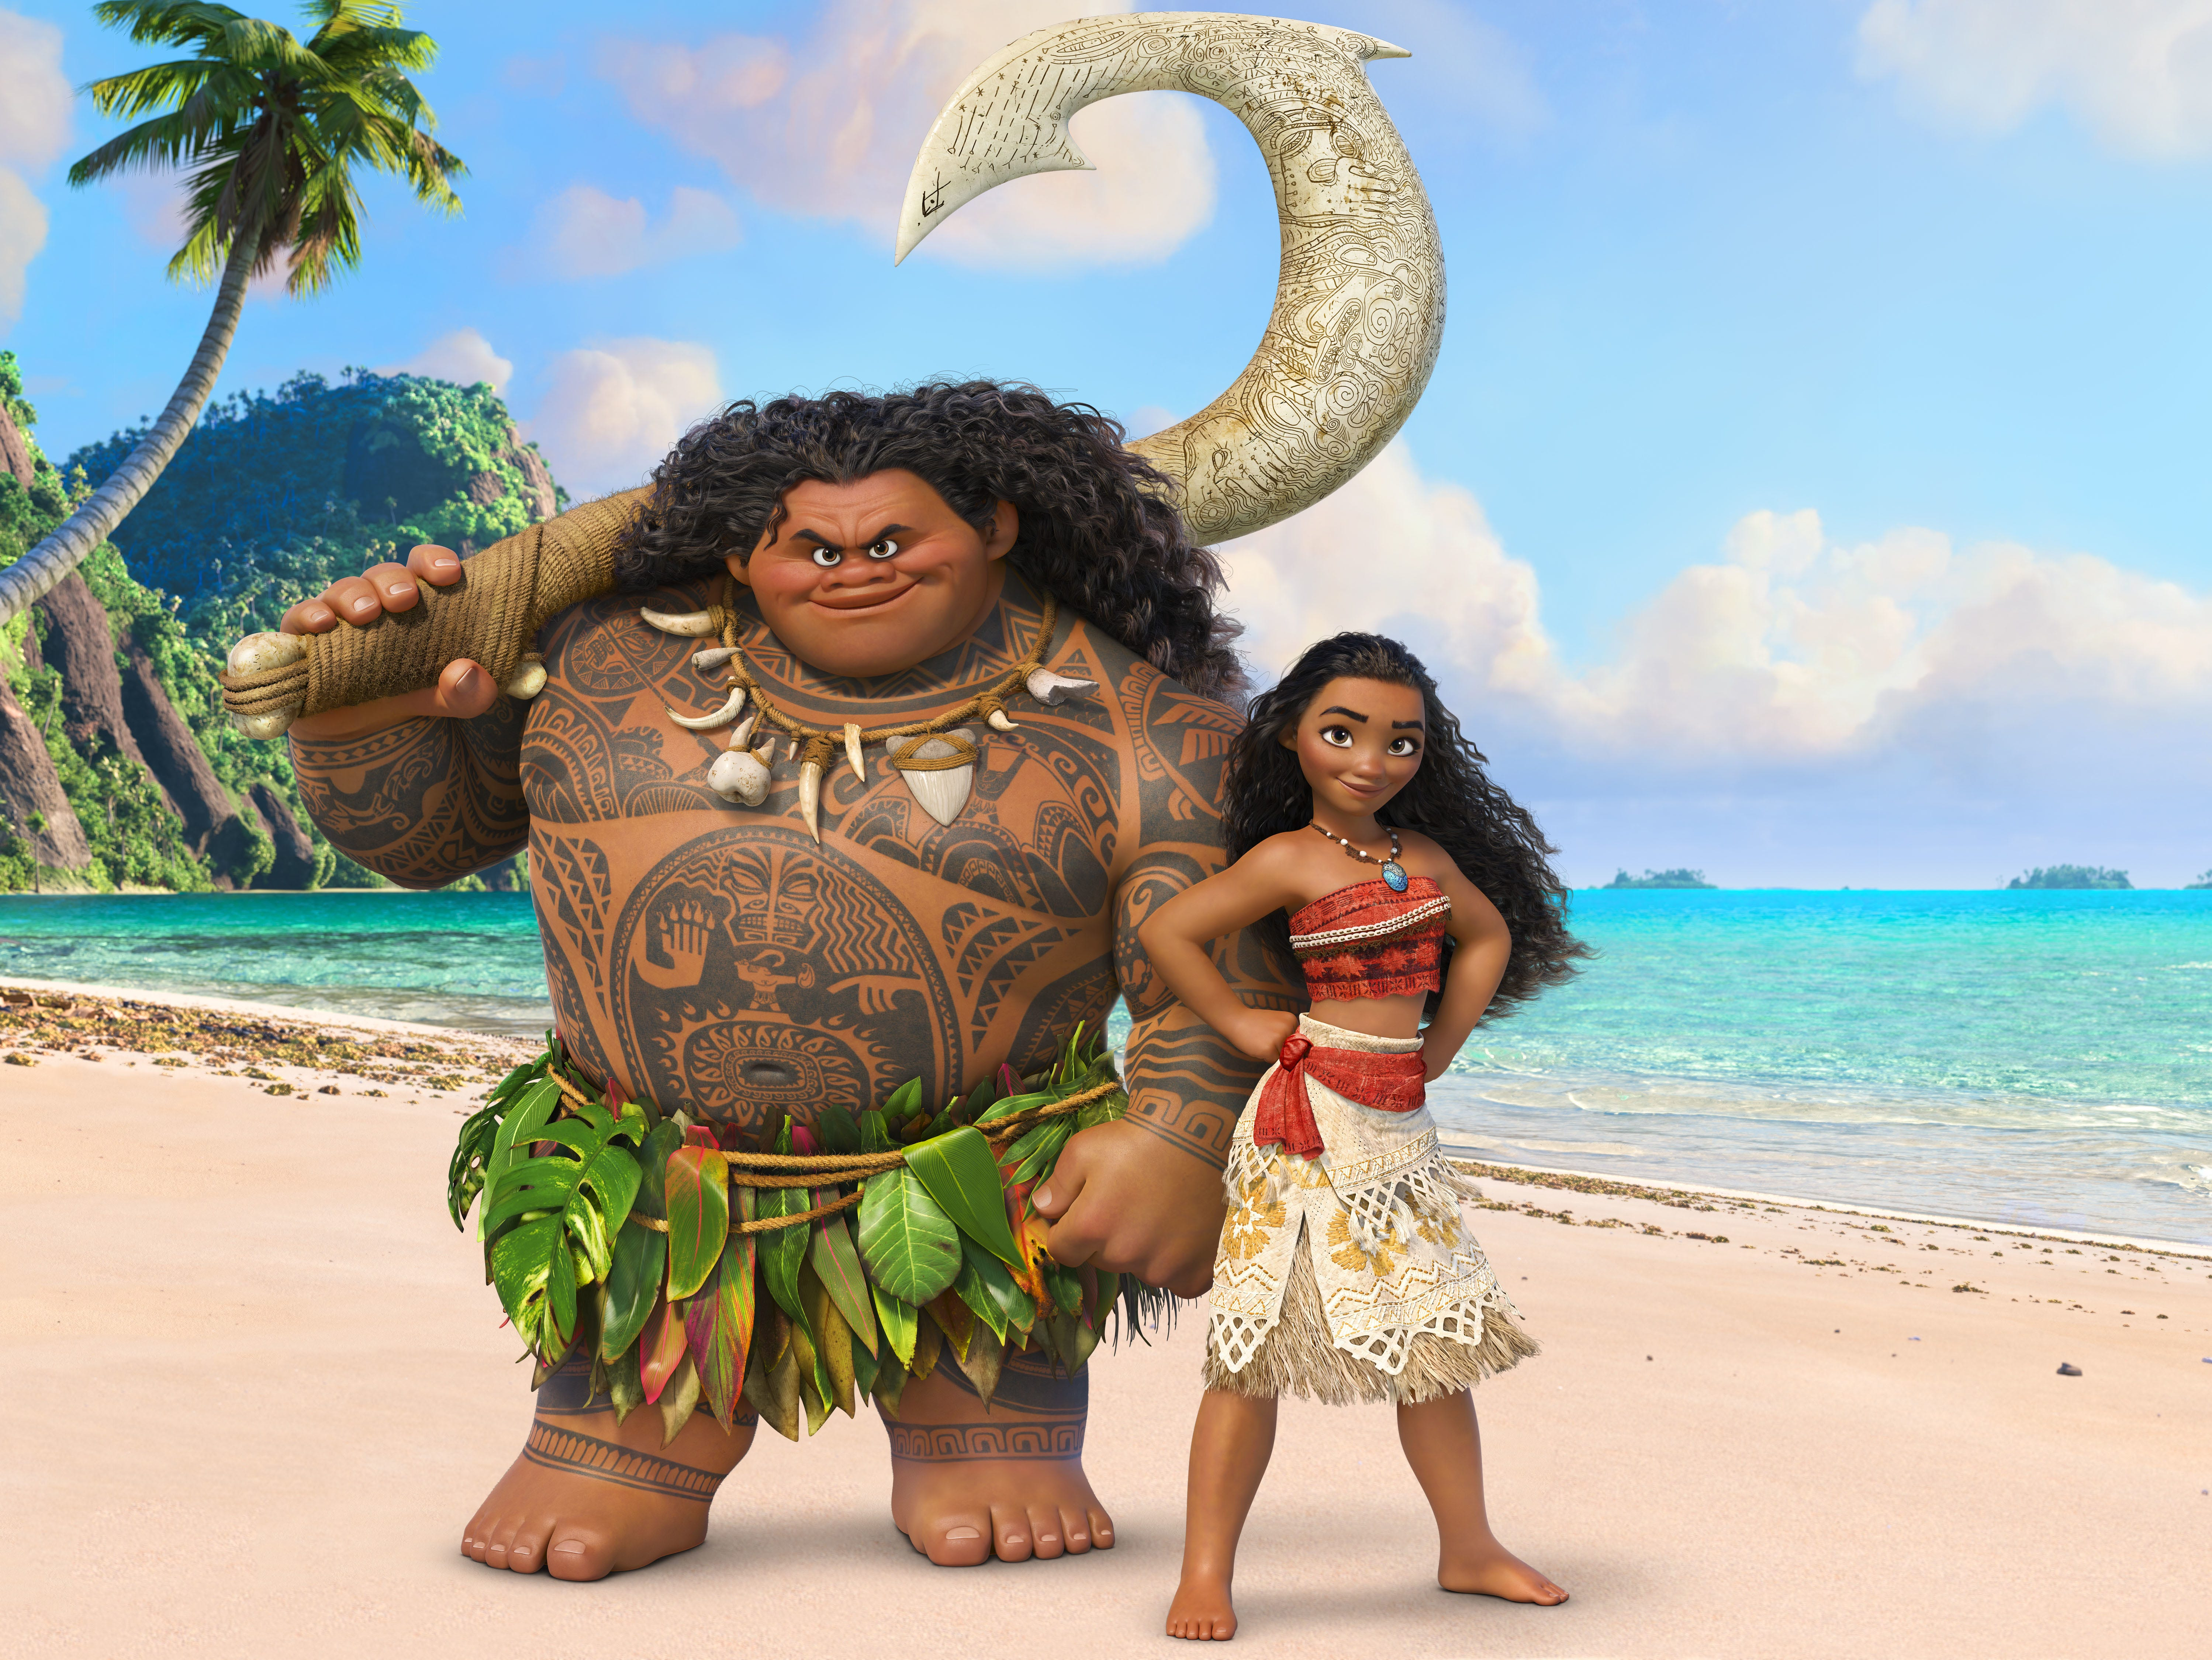 Week in entertainment: 'Moana' comes home; 'Skull Island' hits theaters